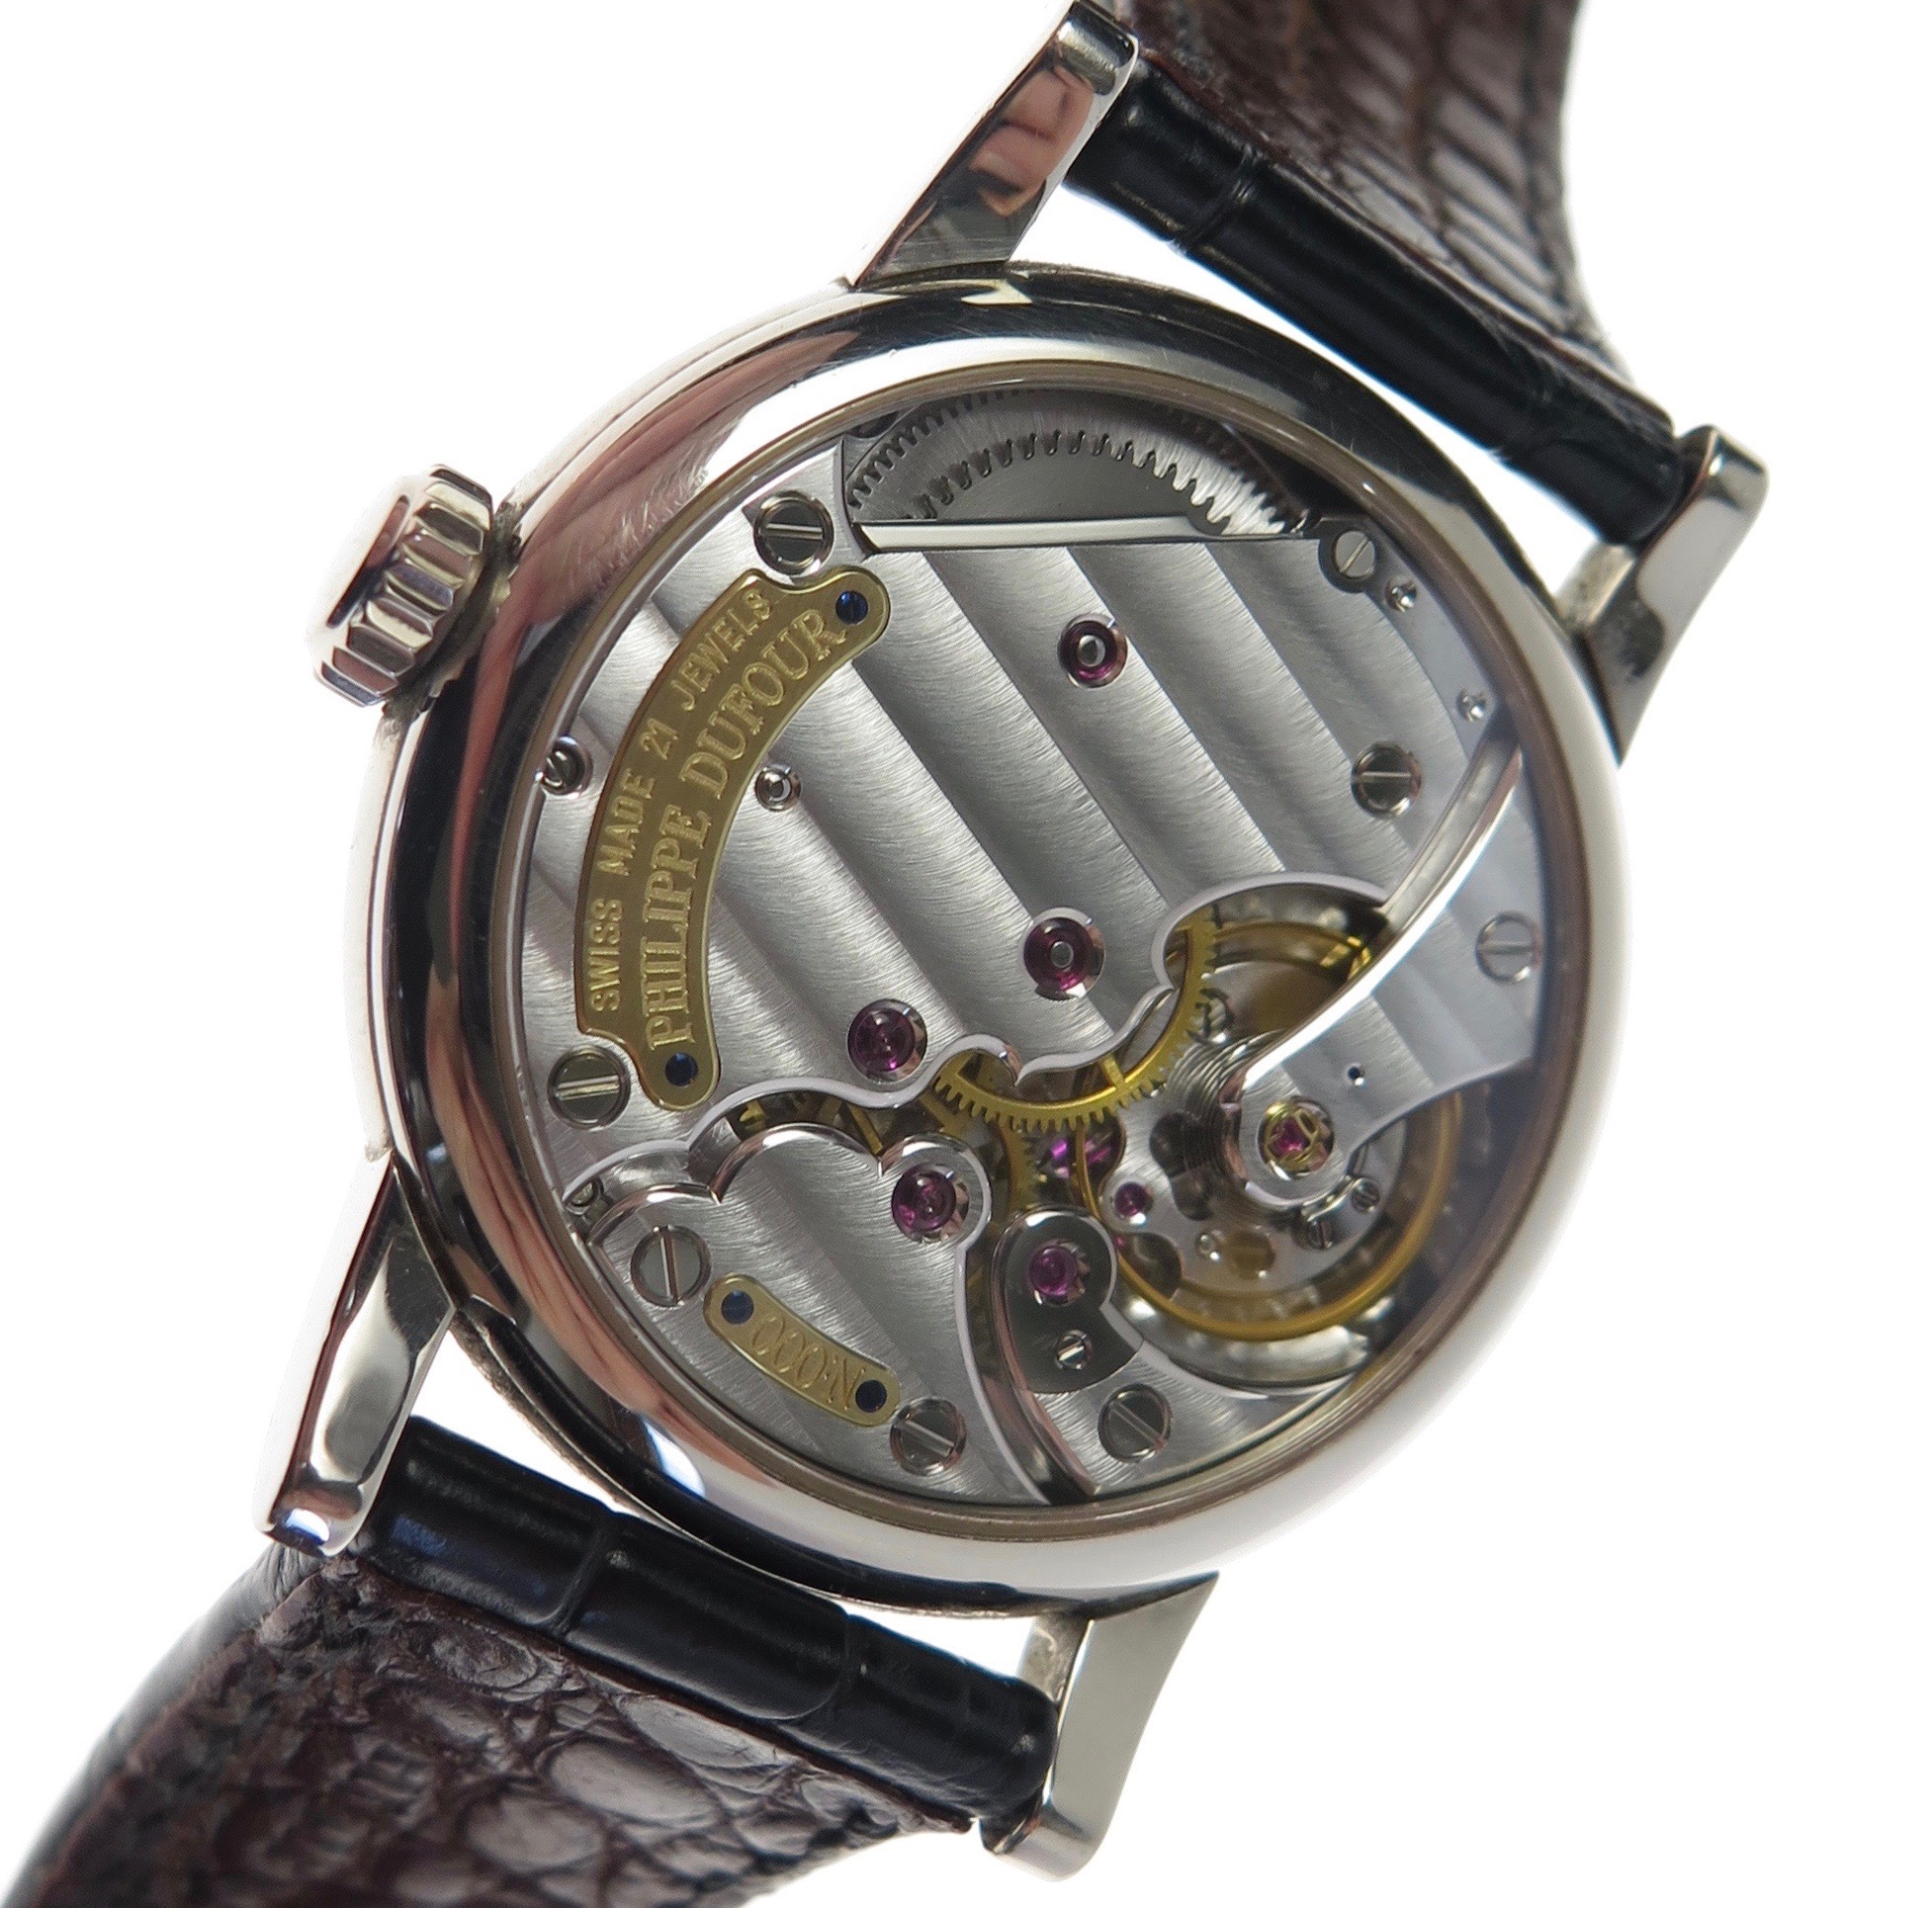 A view showing the fully assembled watch and the effect of the Geneva stripes brought to life by light. As the watch is moved light catches the Geneva stripes differently altering its aesthetic.